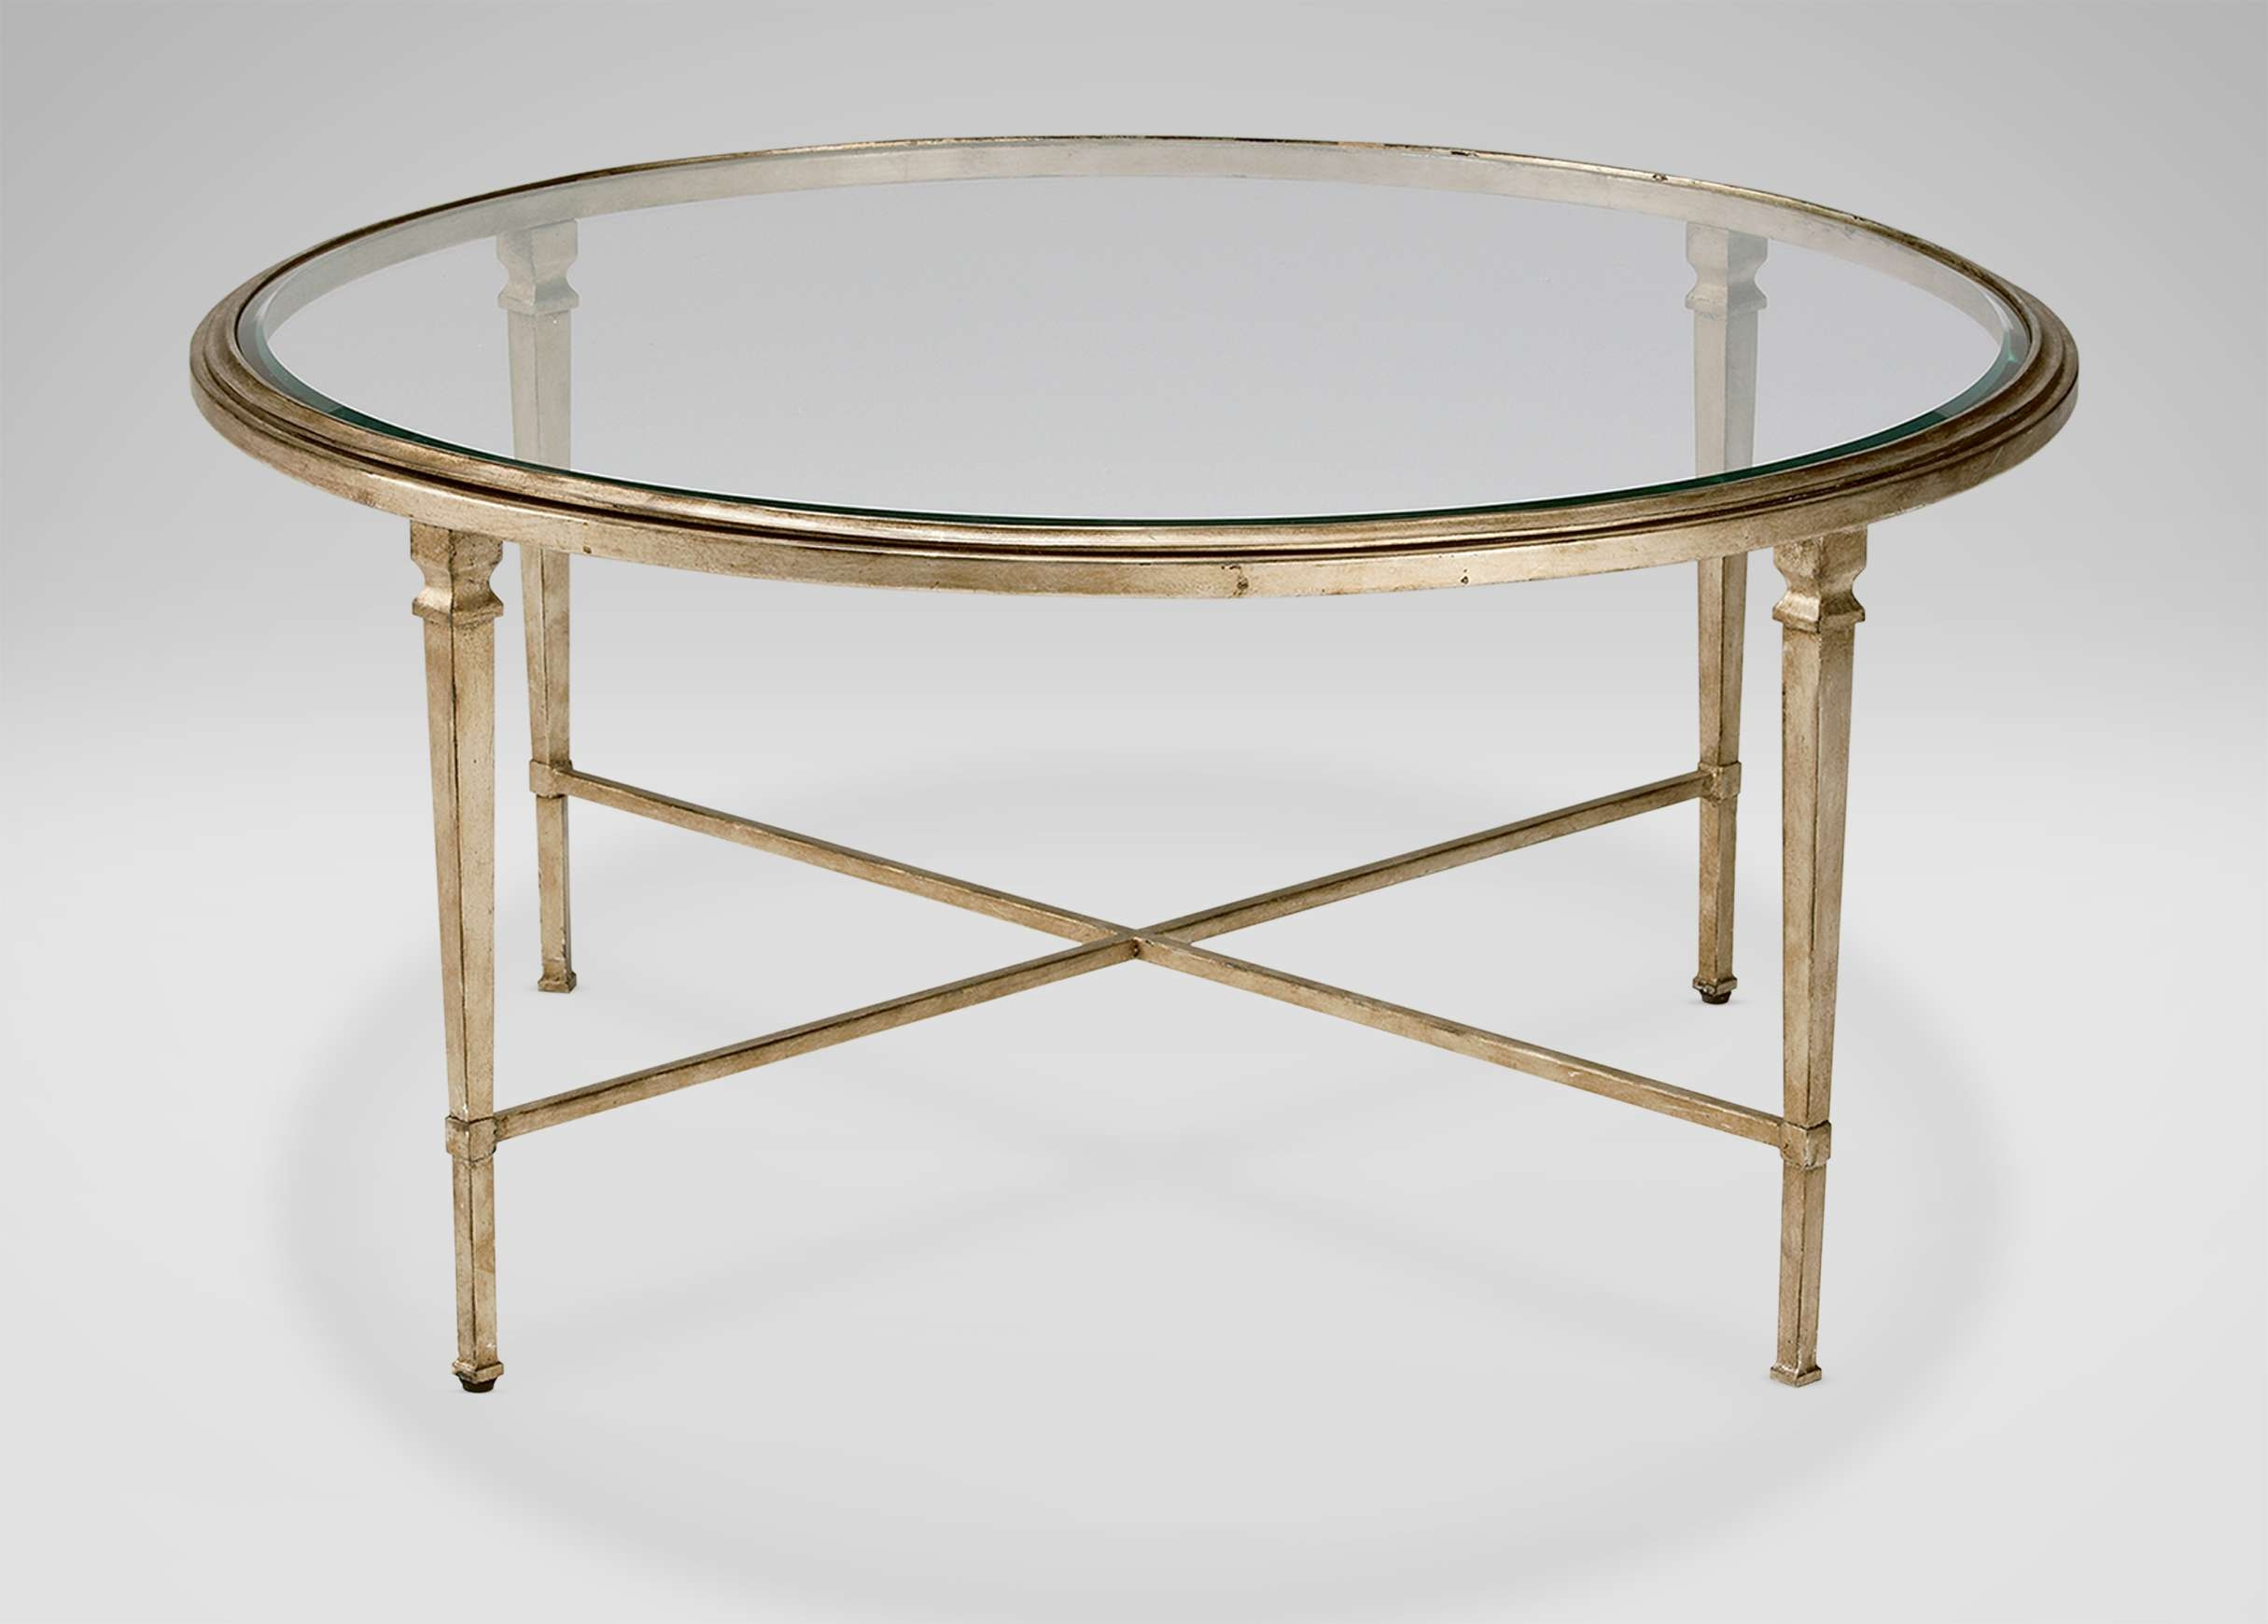 2017 Bronze Coffee Tables Pertaining To Coffee Table : Fabulous Contemporary Coffee Table / Glass / Brass (View 15 of 20)